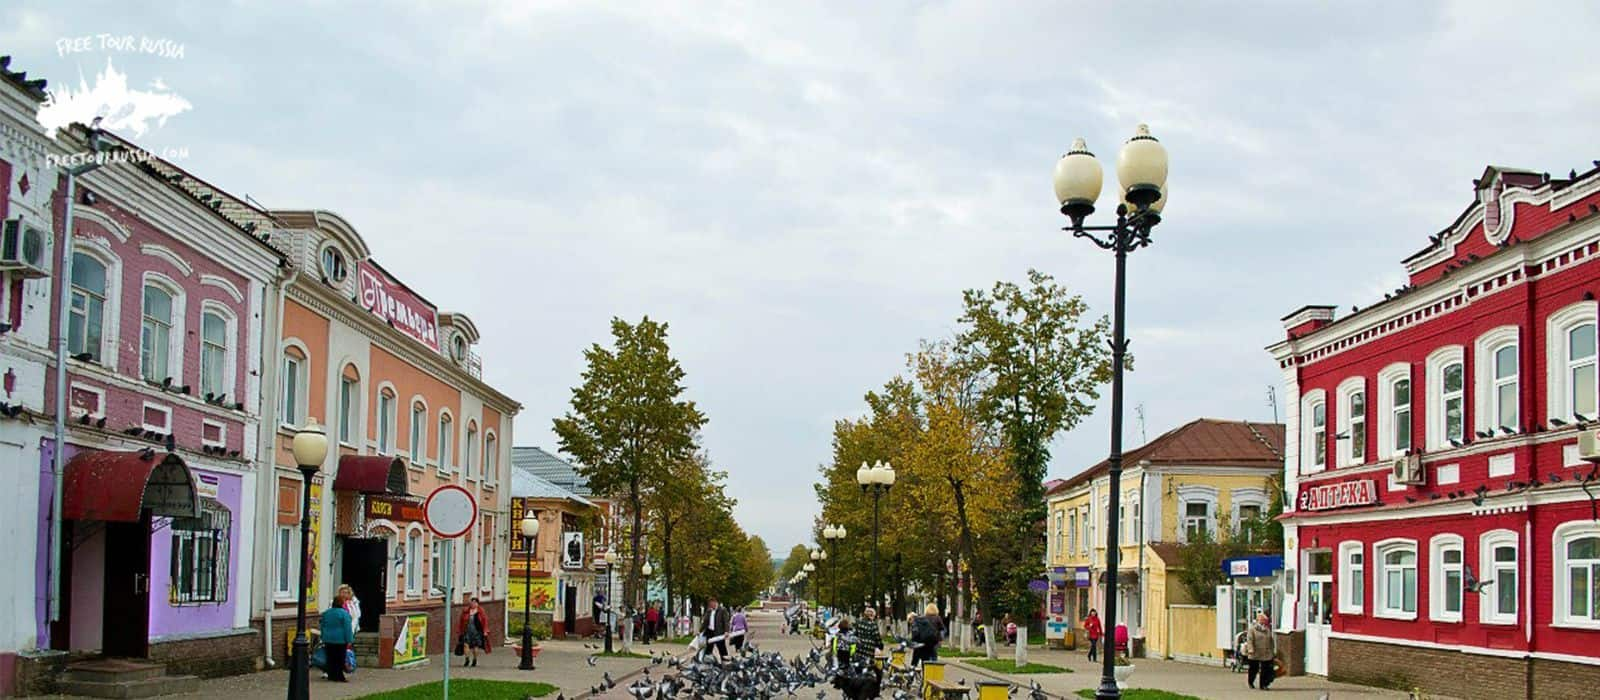 Tour to the city of Semionov